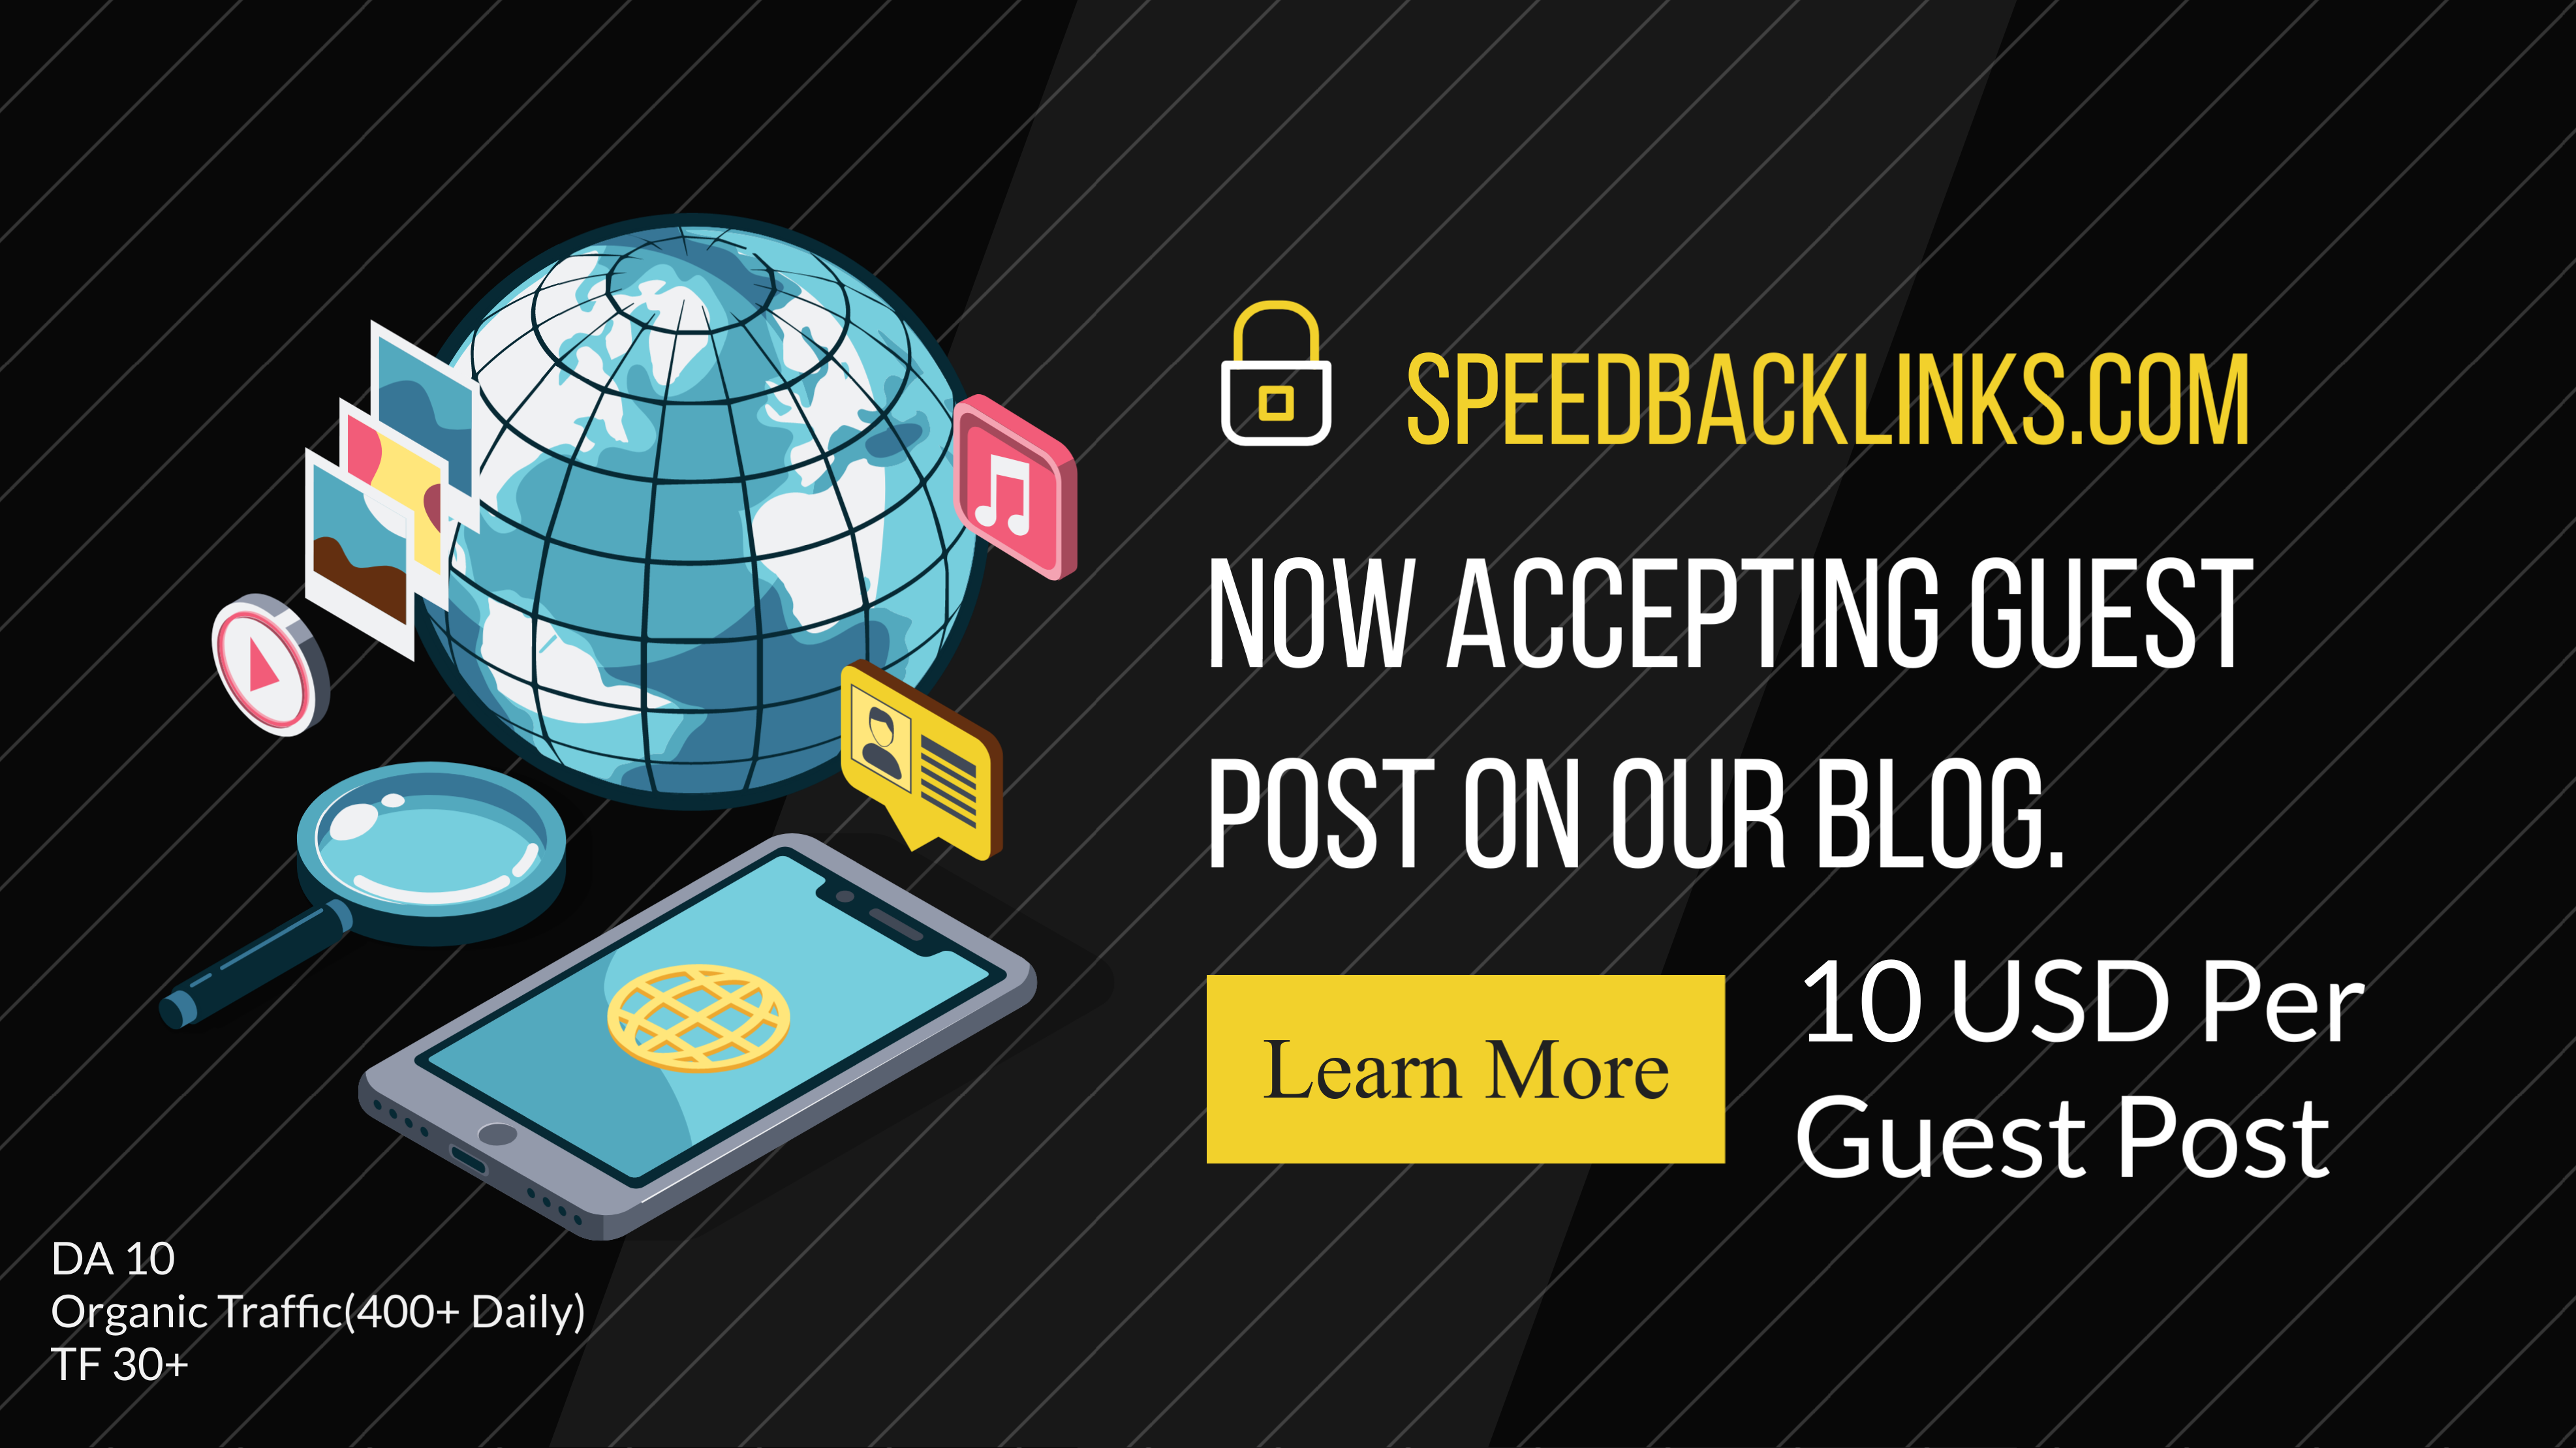 will provide you a guest post on our blog